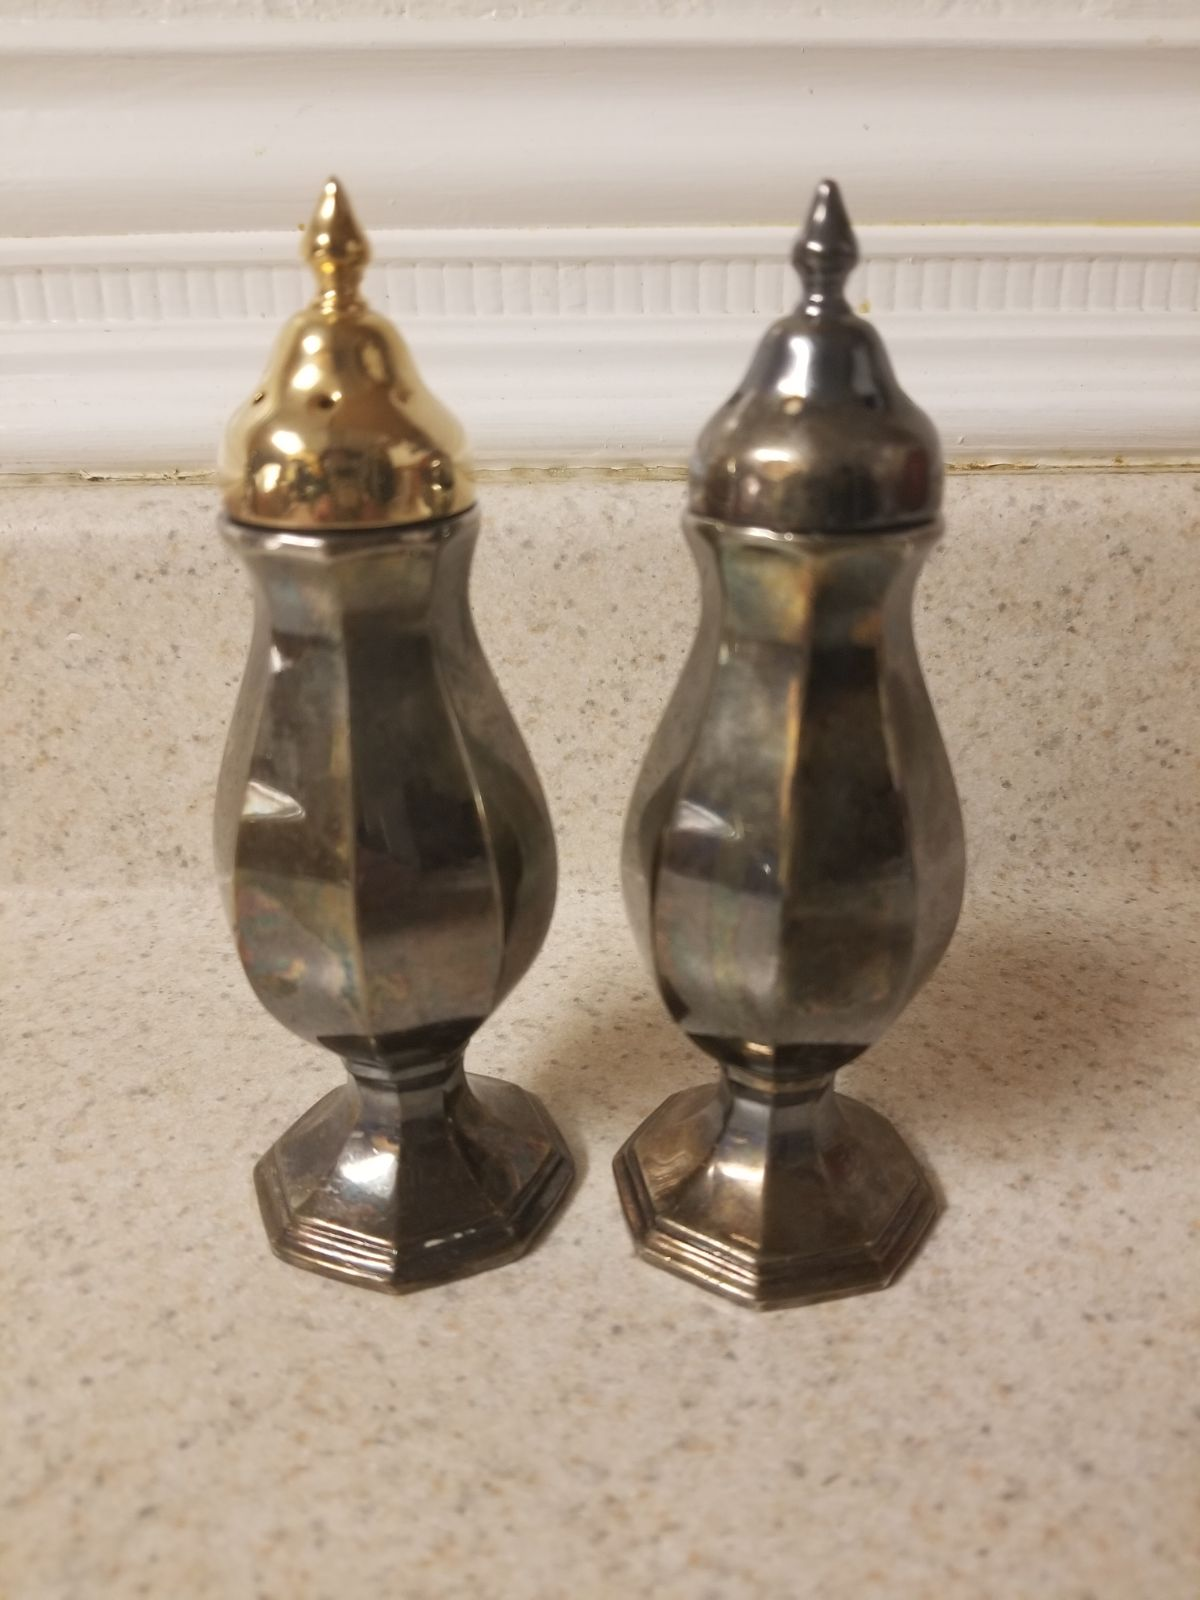 Vintage Wallace salt and pepper shakers